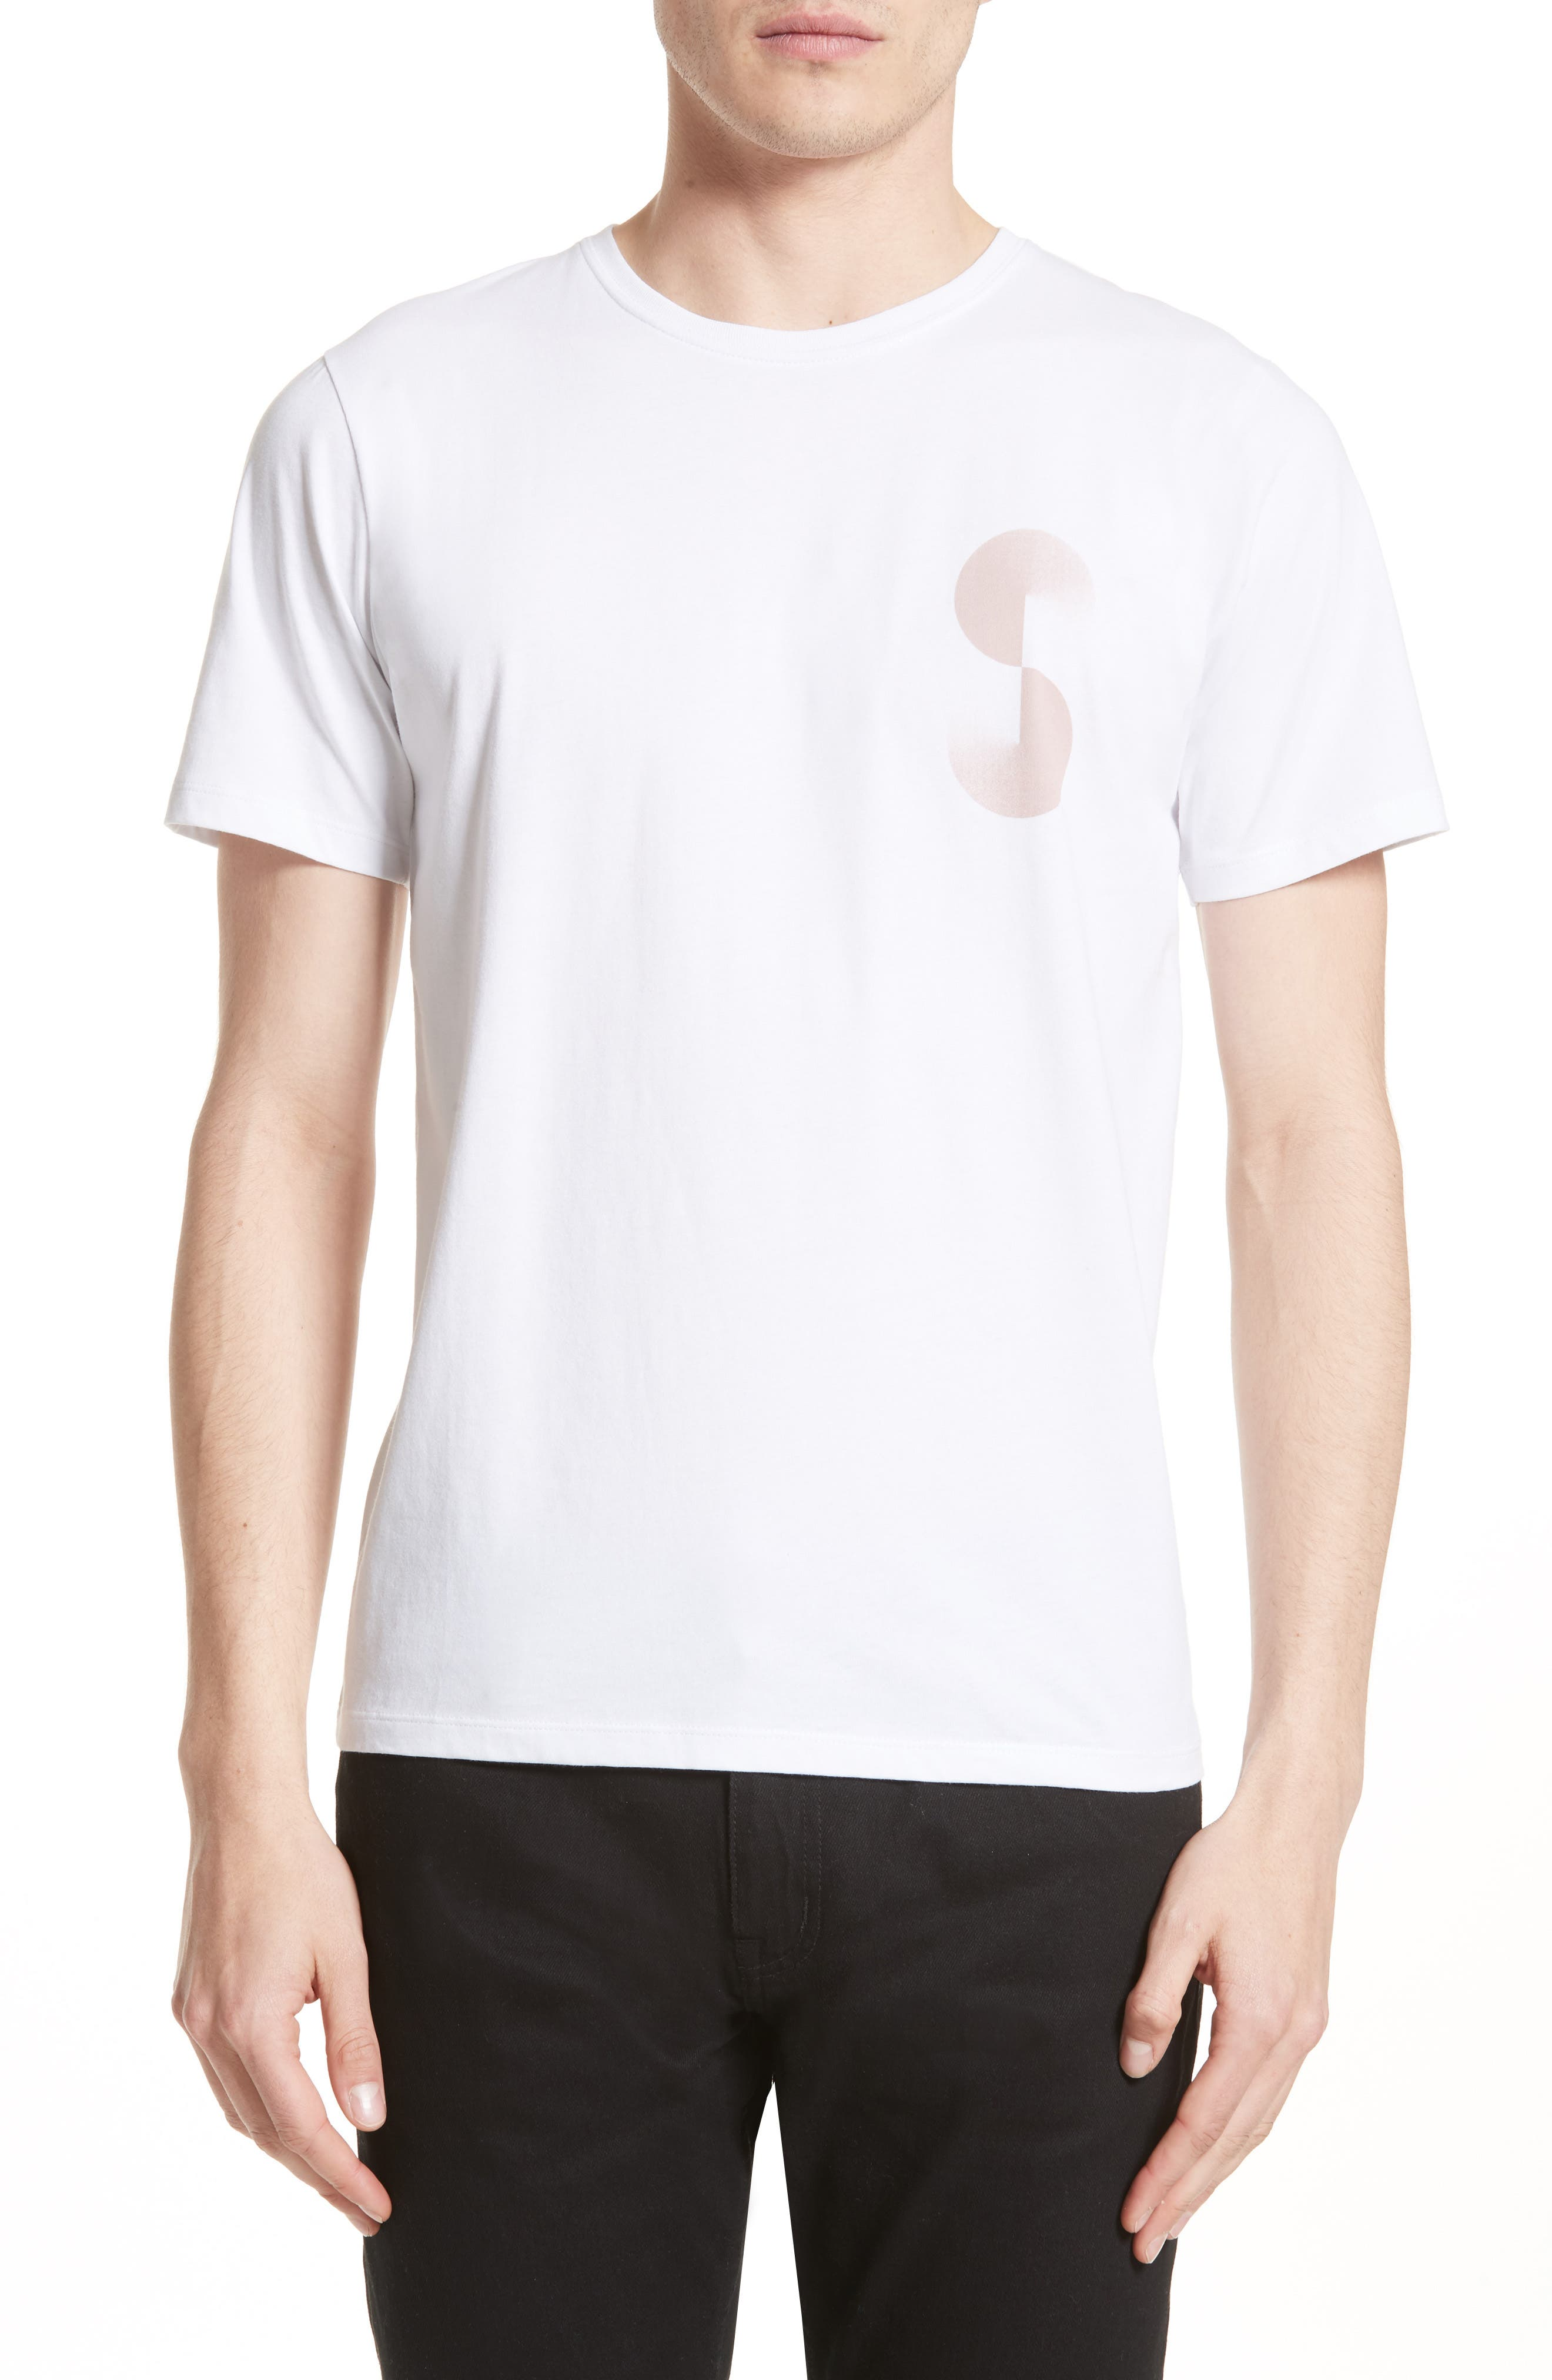 Alternate Image 1 Selected - Saturdays NYC Gradient Graphic T-Shirt